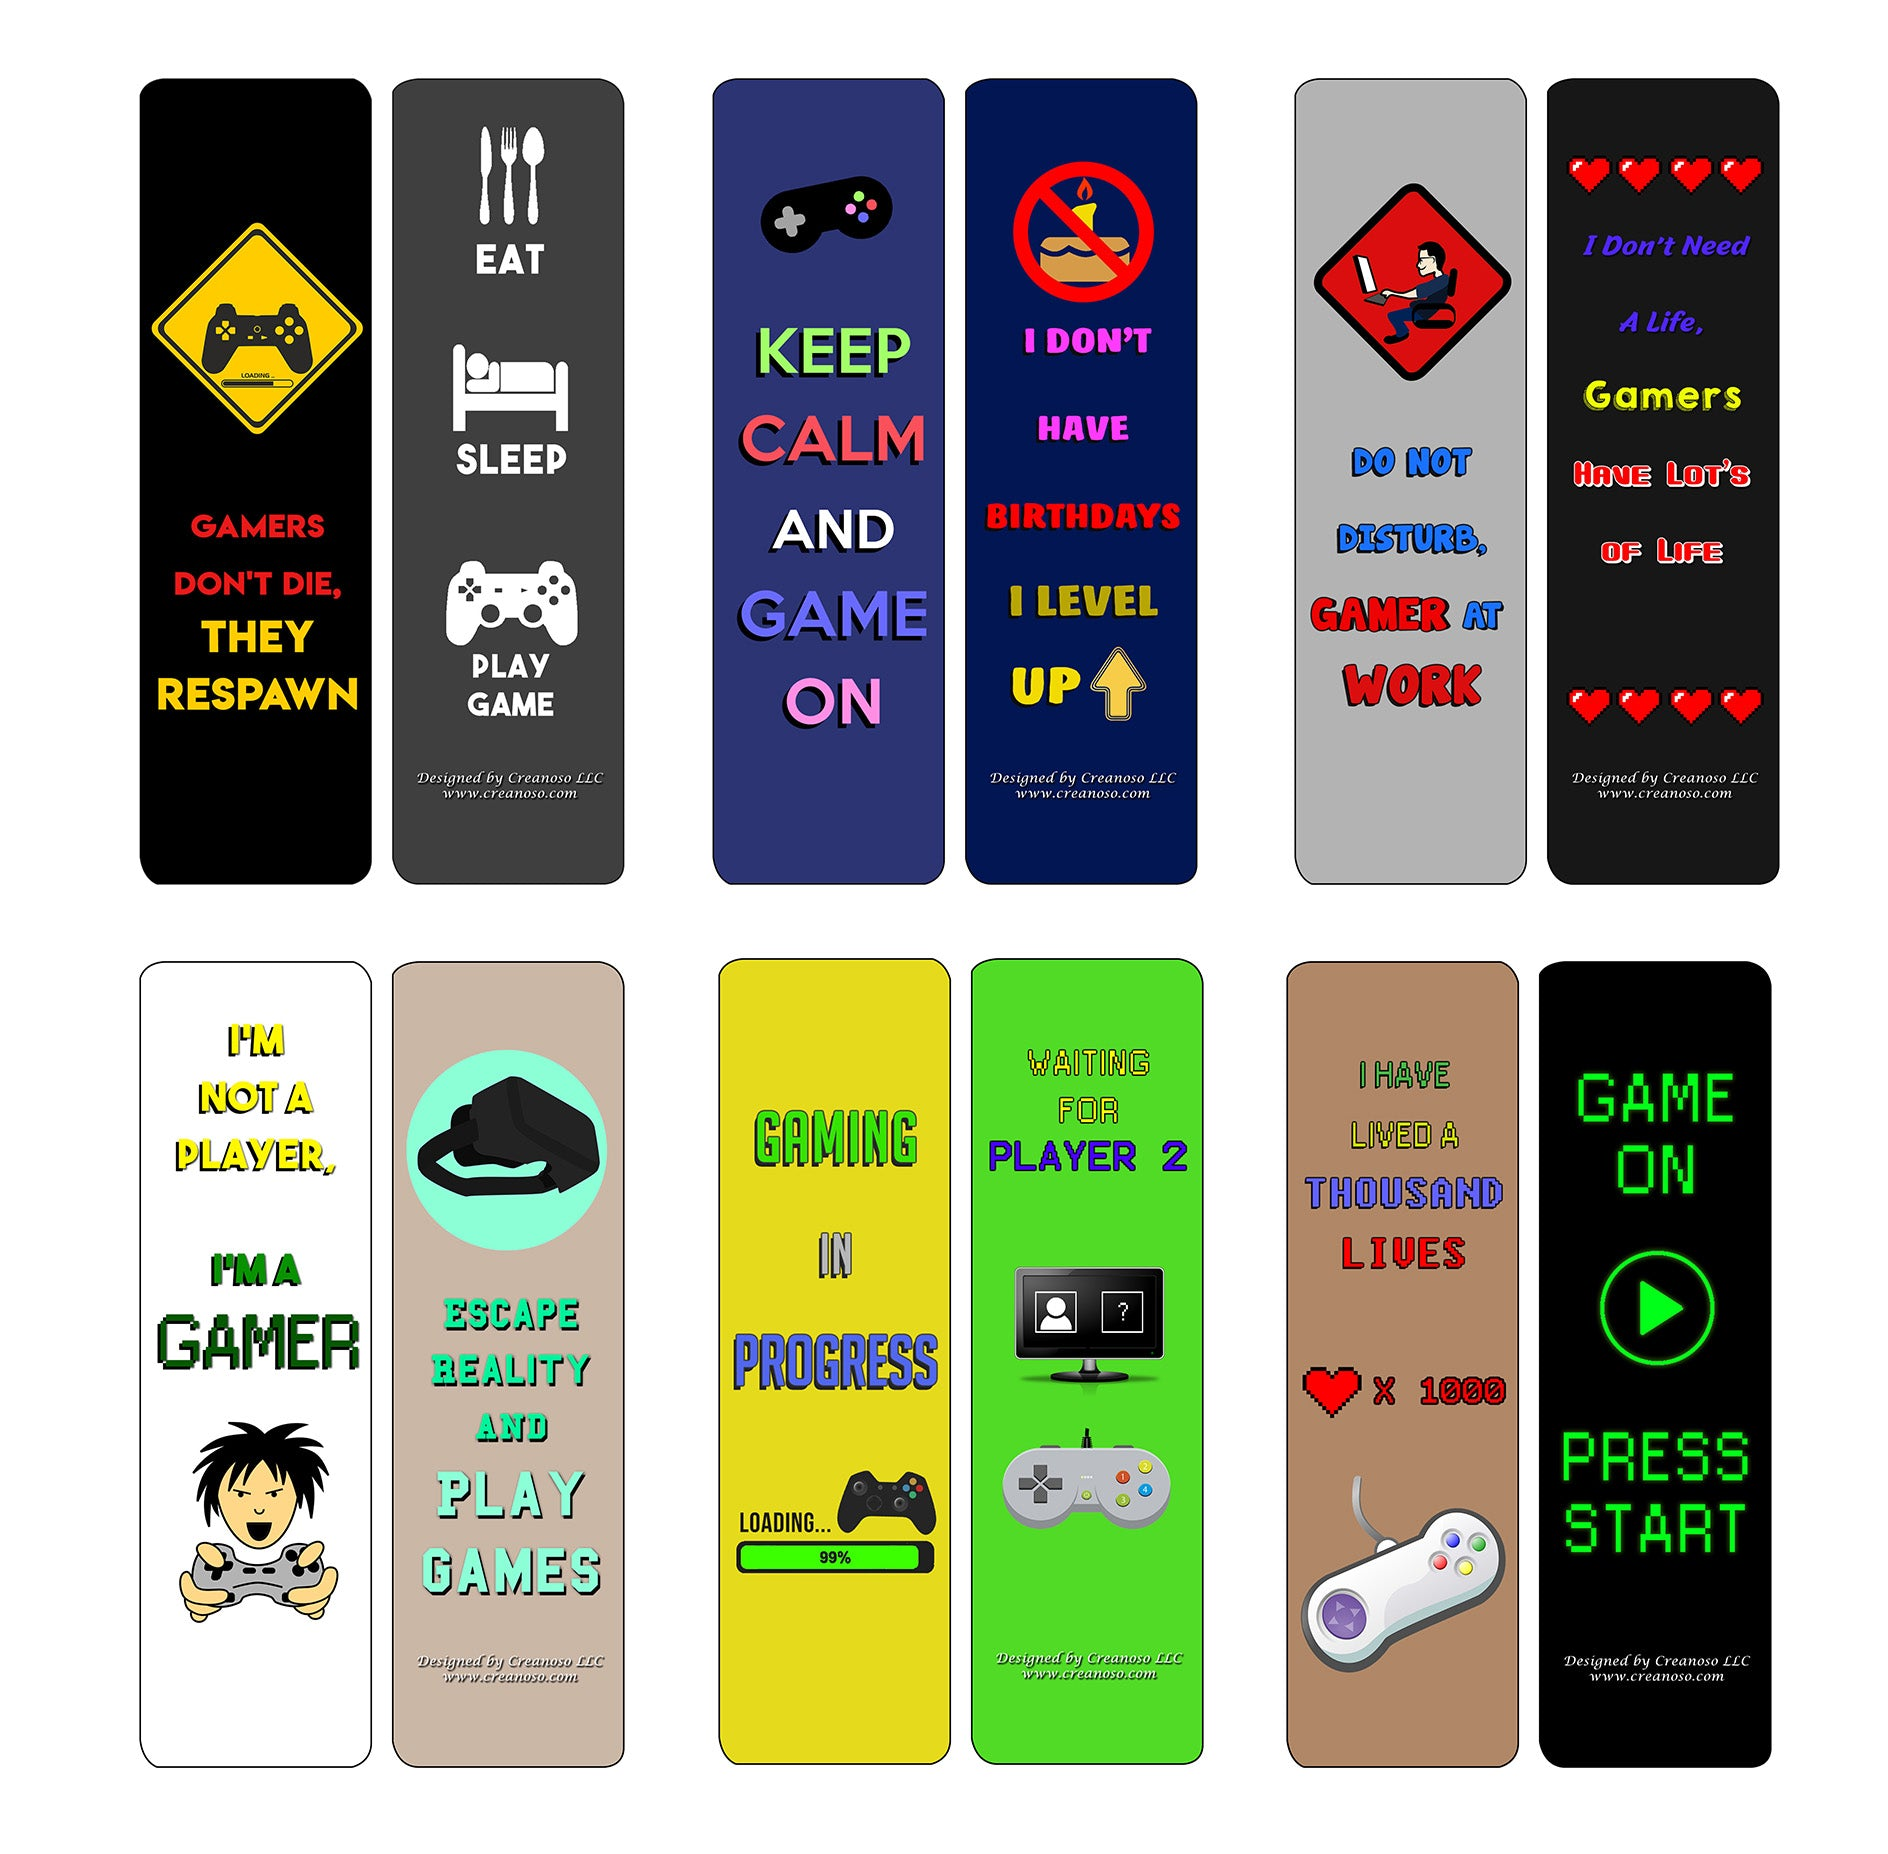 Veterans Adult Men Six Bulk Assorted Bookmarks Designs Military Giveaway Tokens Stocking Stuffers Ideas for Soldiers 12-Pack Creanoso Patriotic Army Bookmarks Premium Gift Collection Set